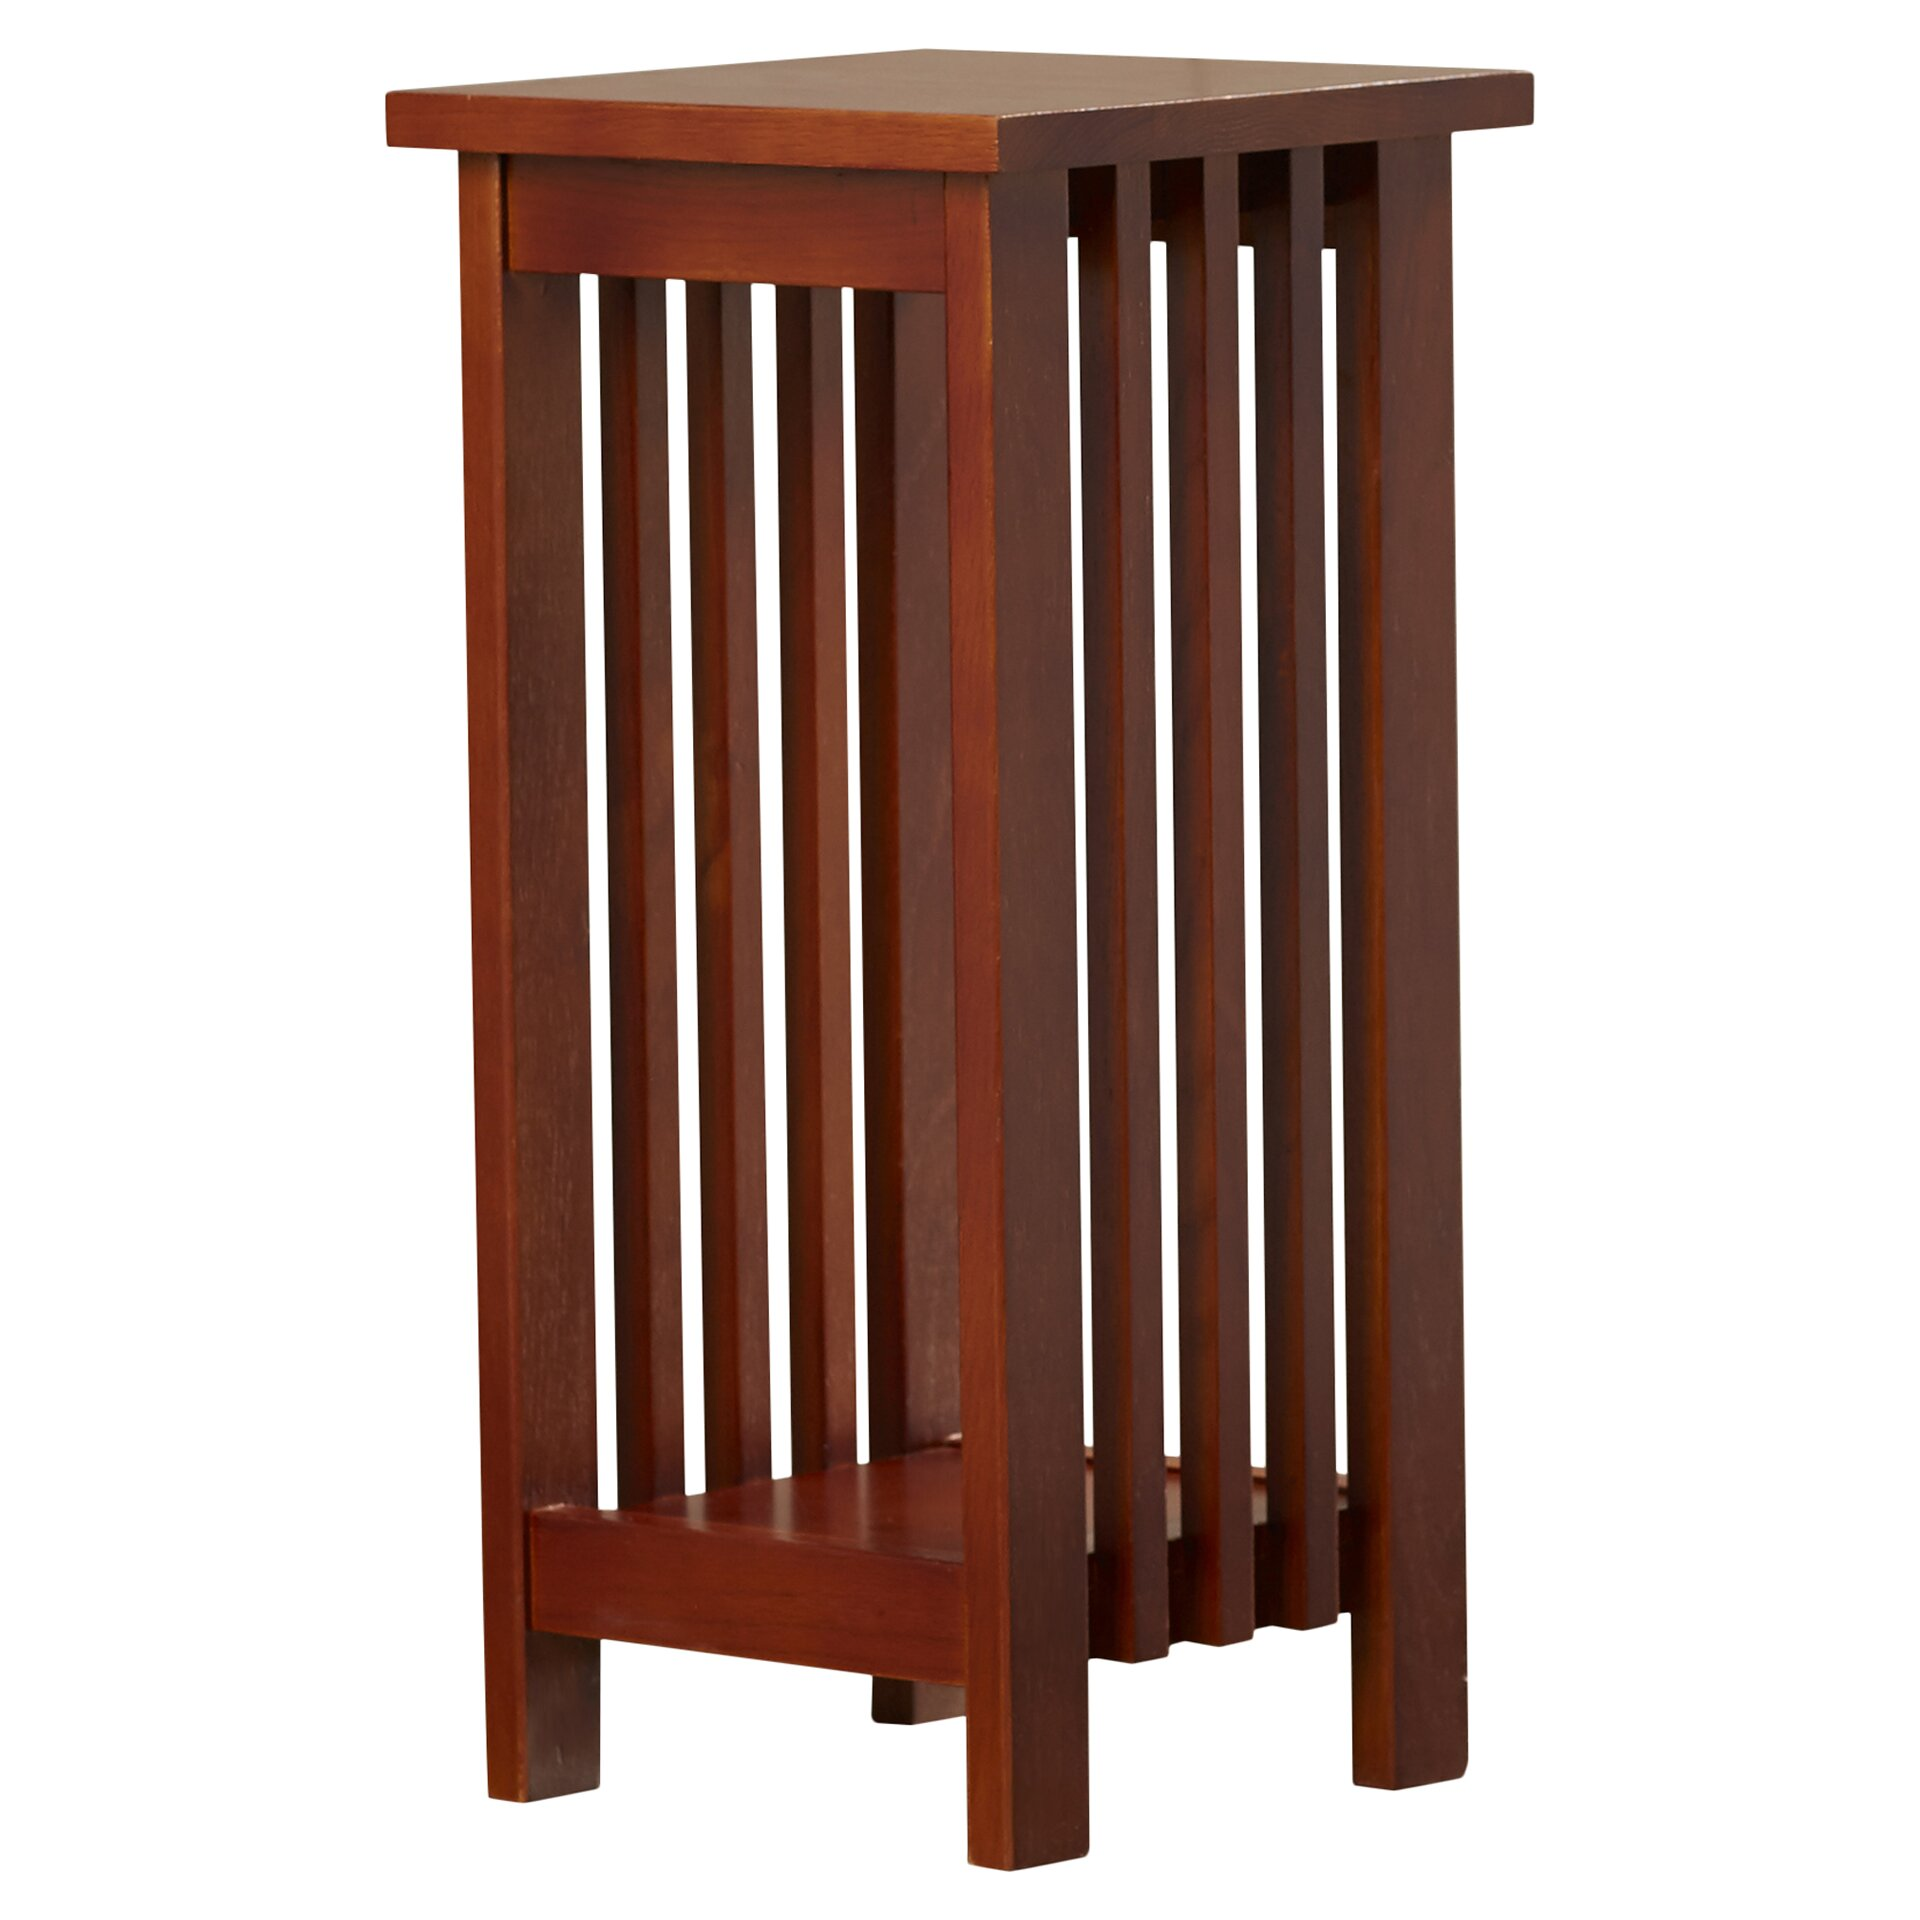 Darby home co folcroft multi tiered plant stand reviews for Stand 2 b